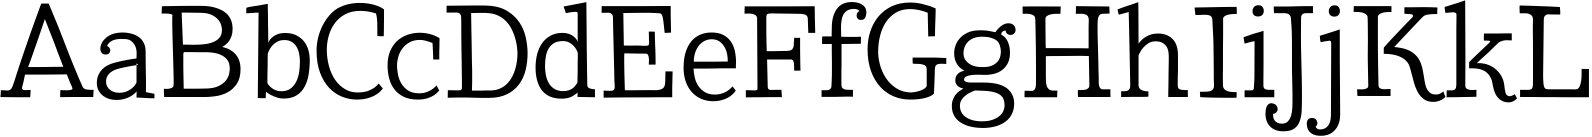 TT Coats Regular Font